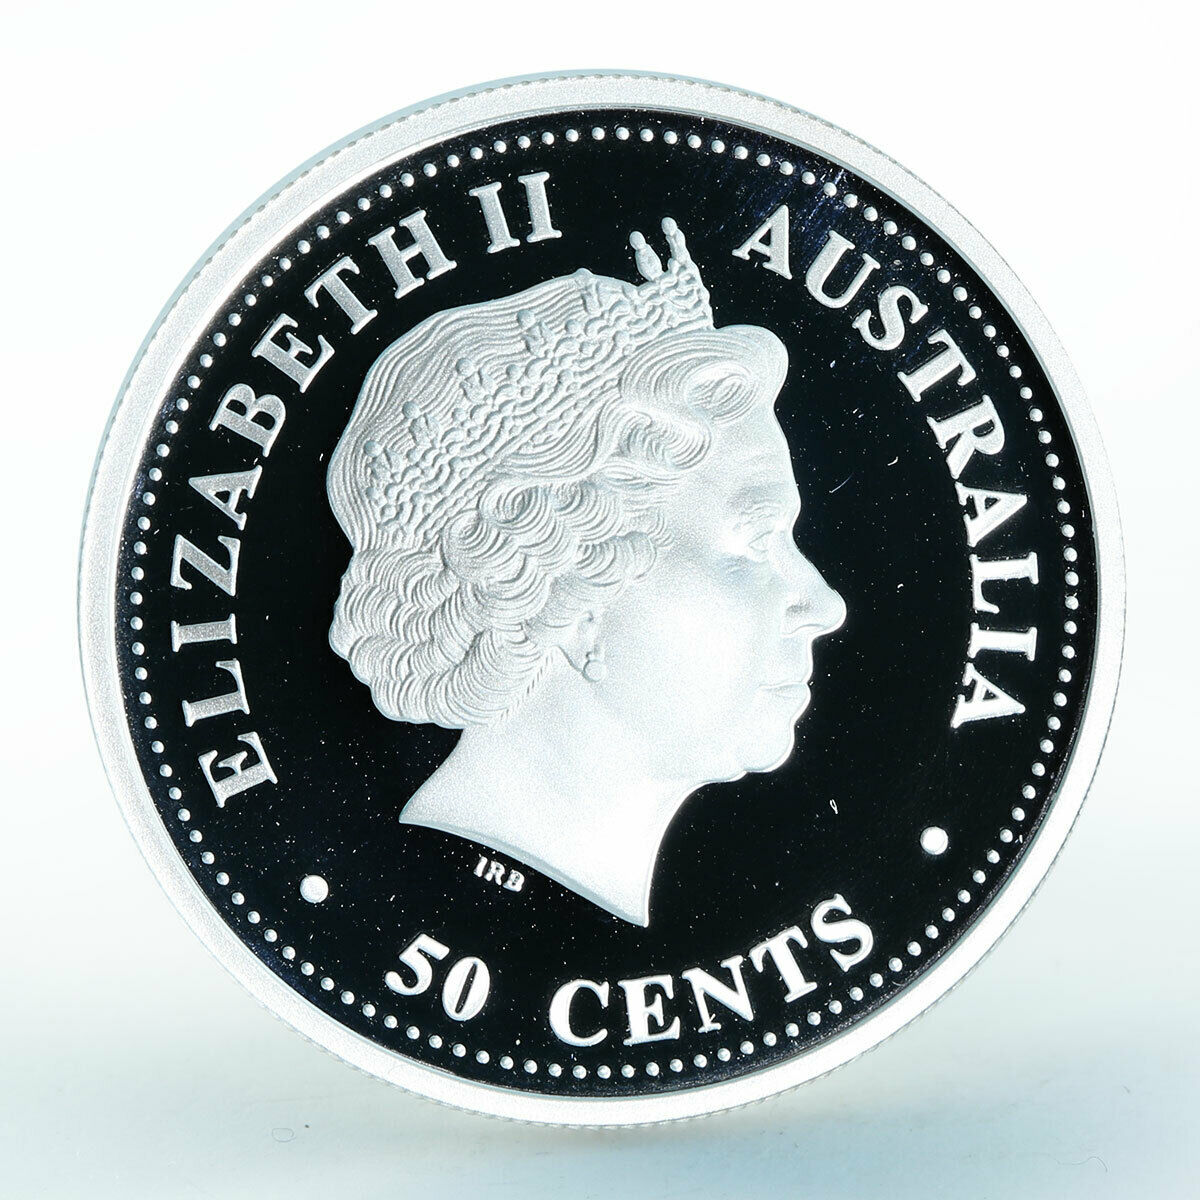 Australia 50 cents Year of the Horse Lunar Series I silver proof coin 1/2 oz 2002